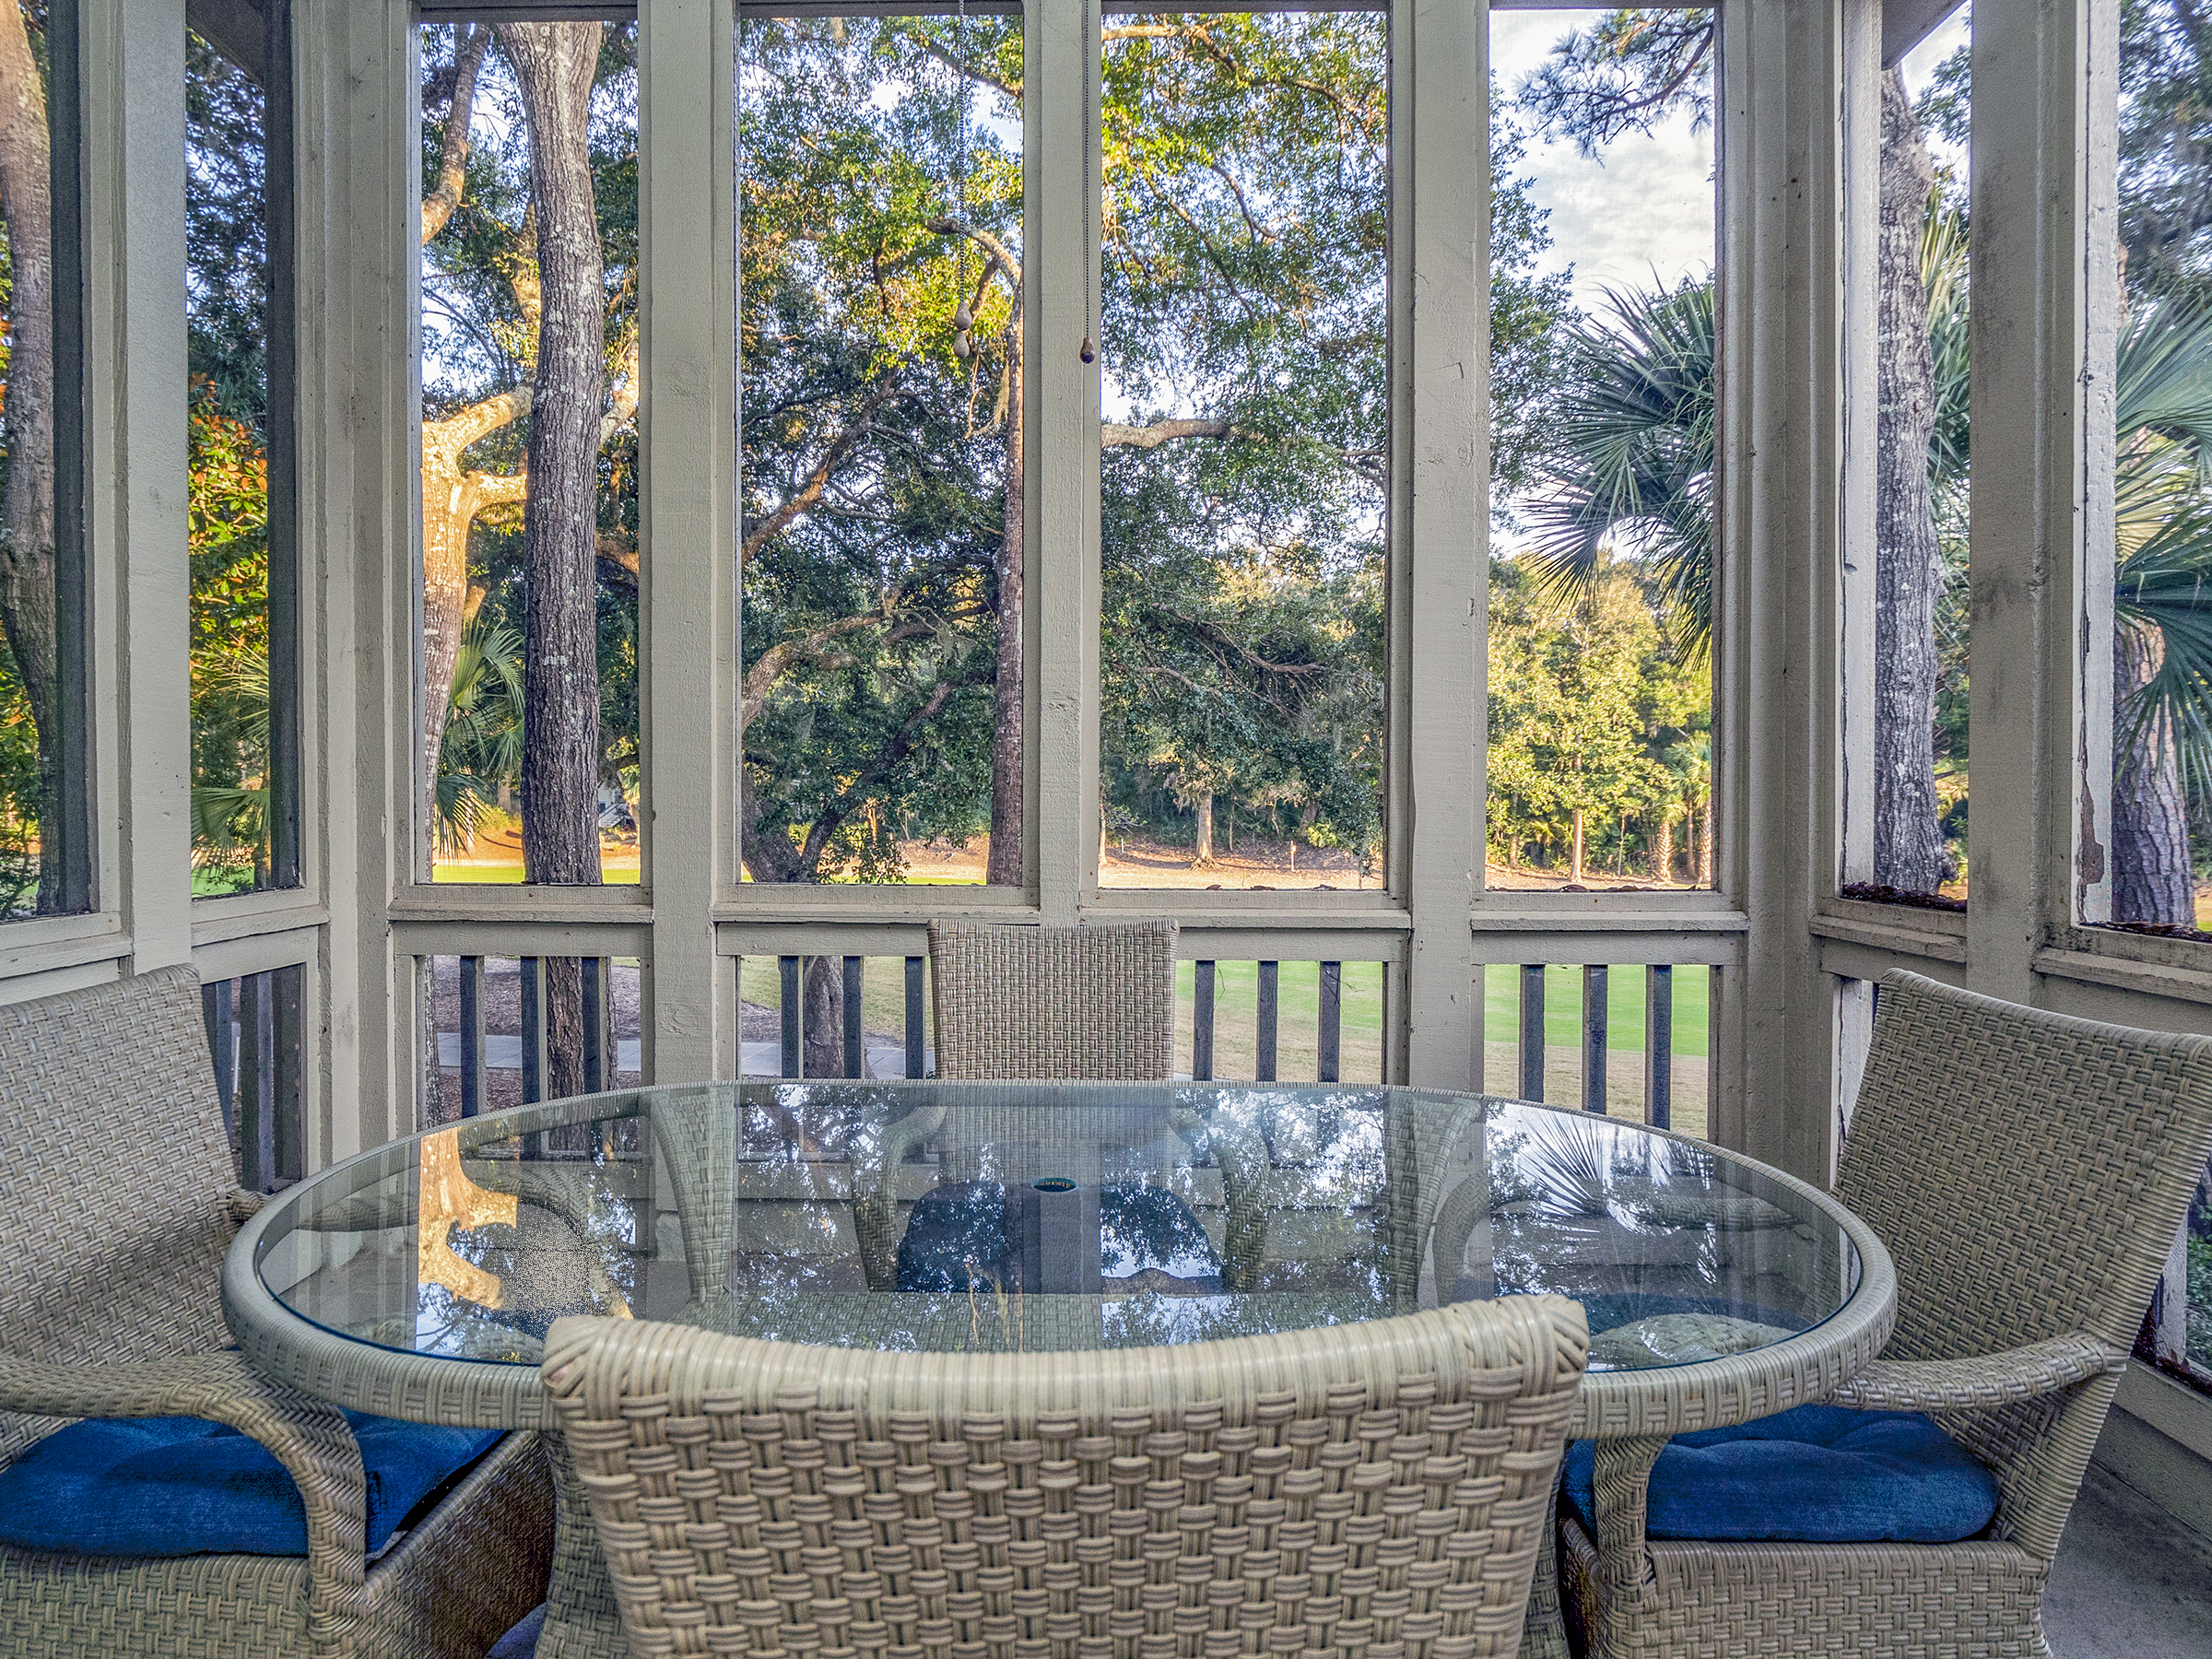 Enjoy the outdoor living space